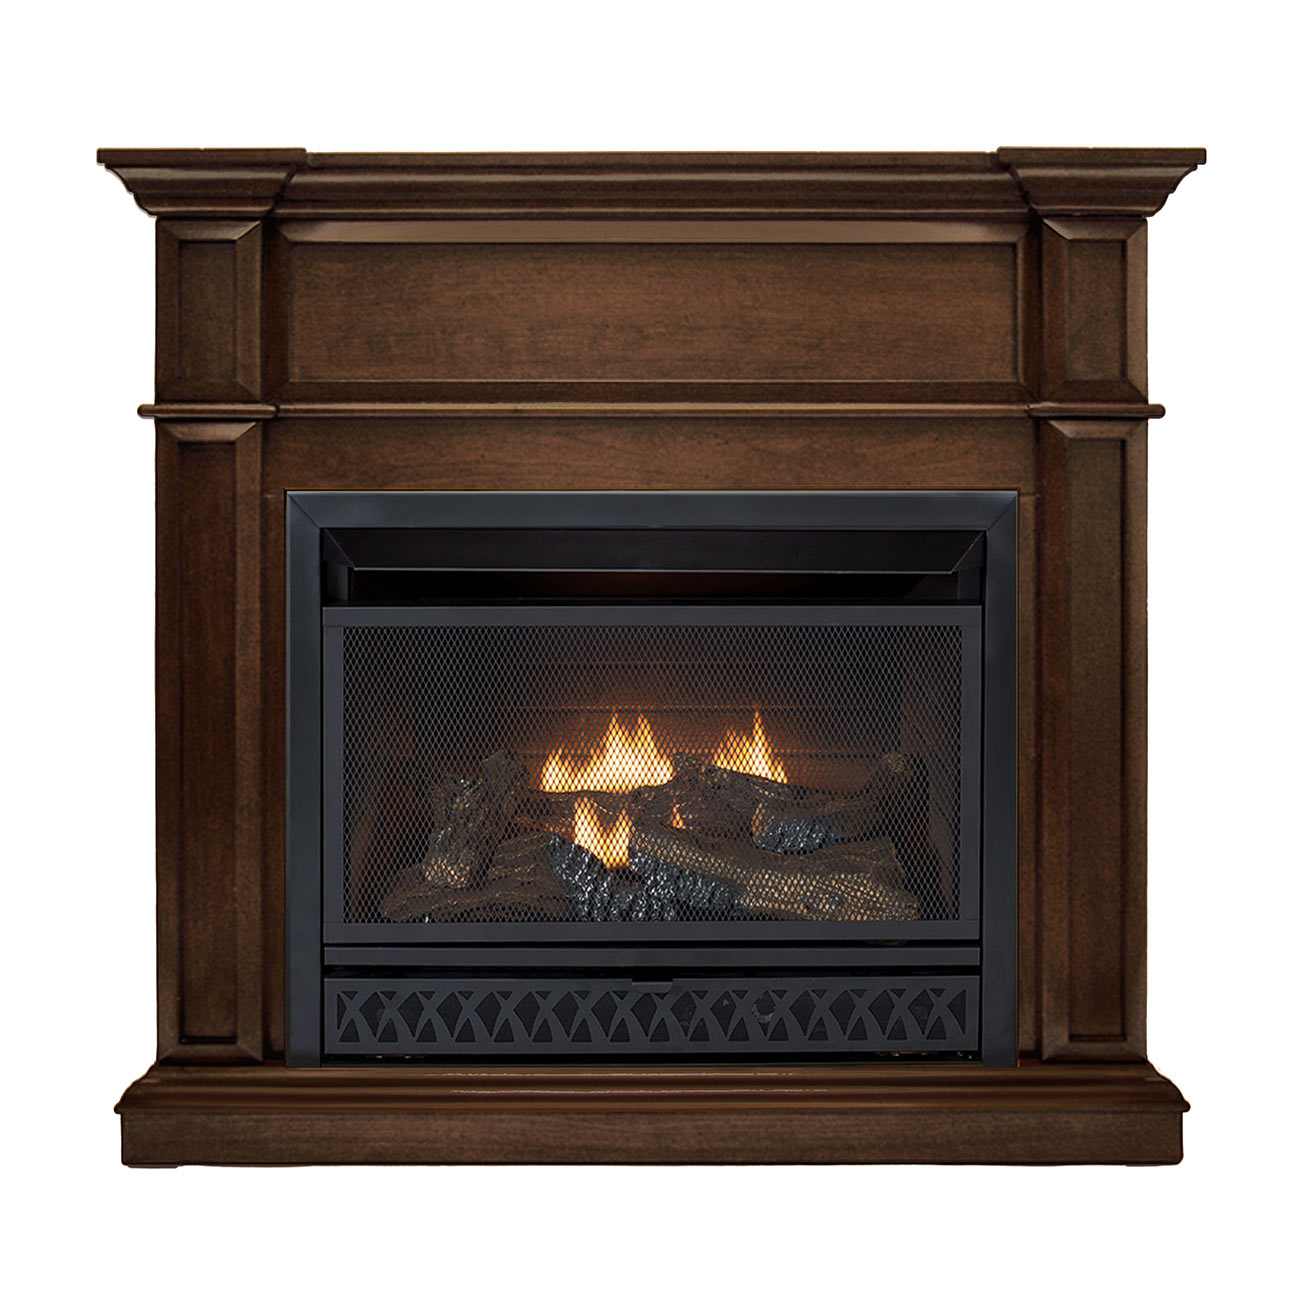 Hearthsense Ventless Fireplace System With Dual Fuel